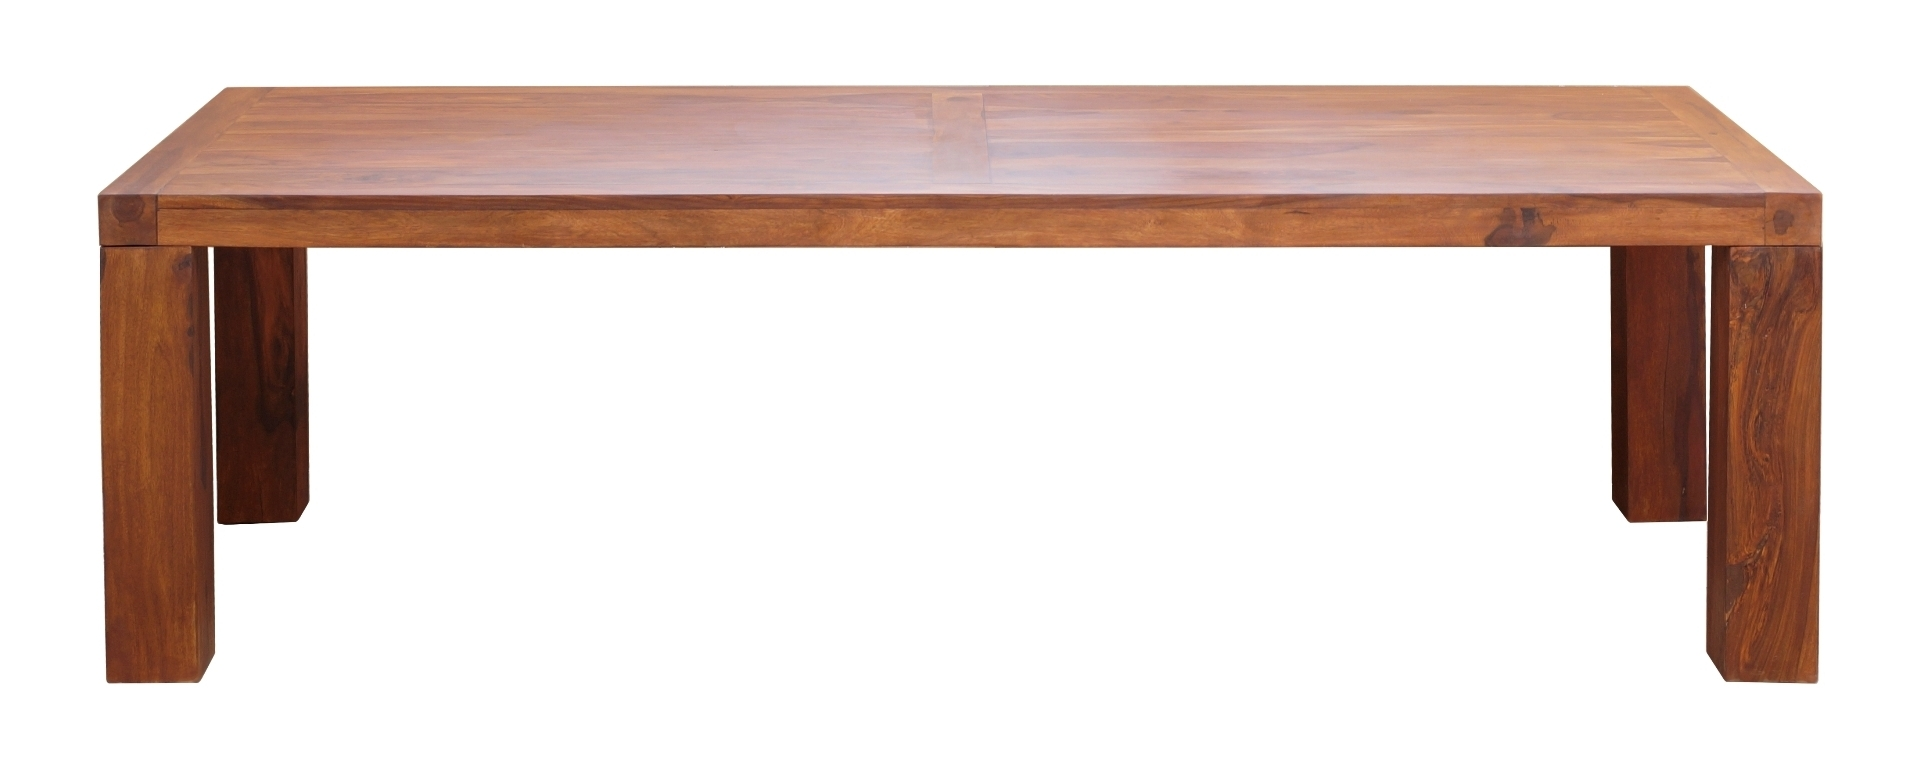 Best And Newest Rio Slab Dining Table Thick Leg – Umaid Craftorium Within Rio Dining Tables (View 3 of 25)